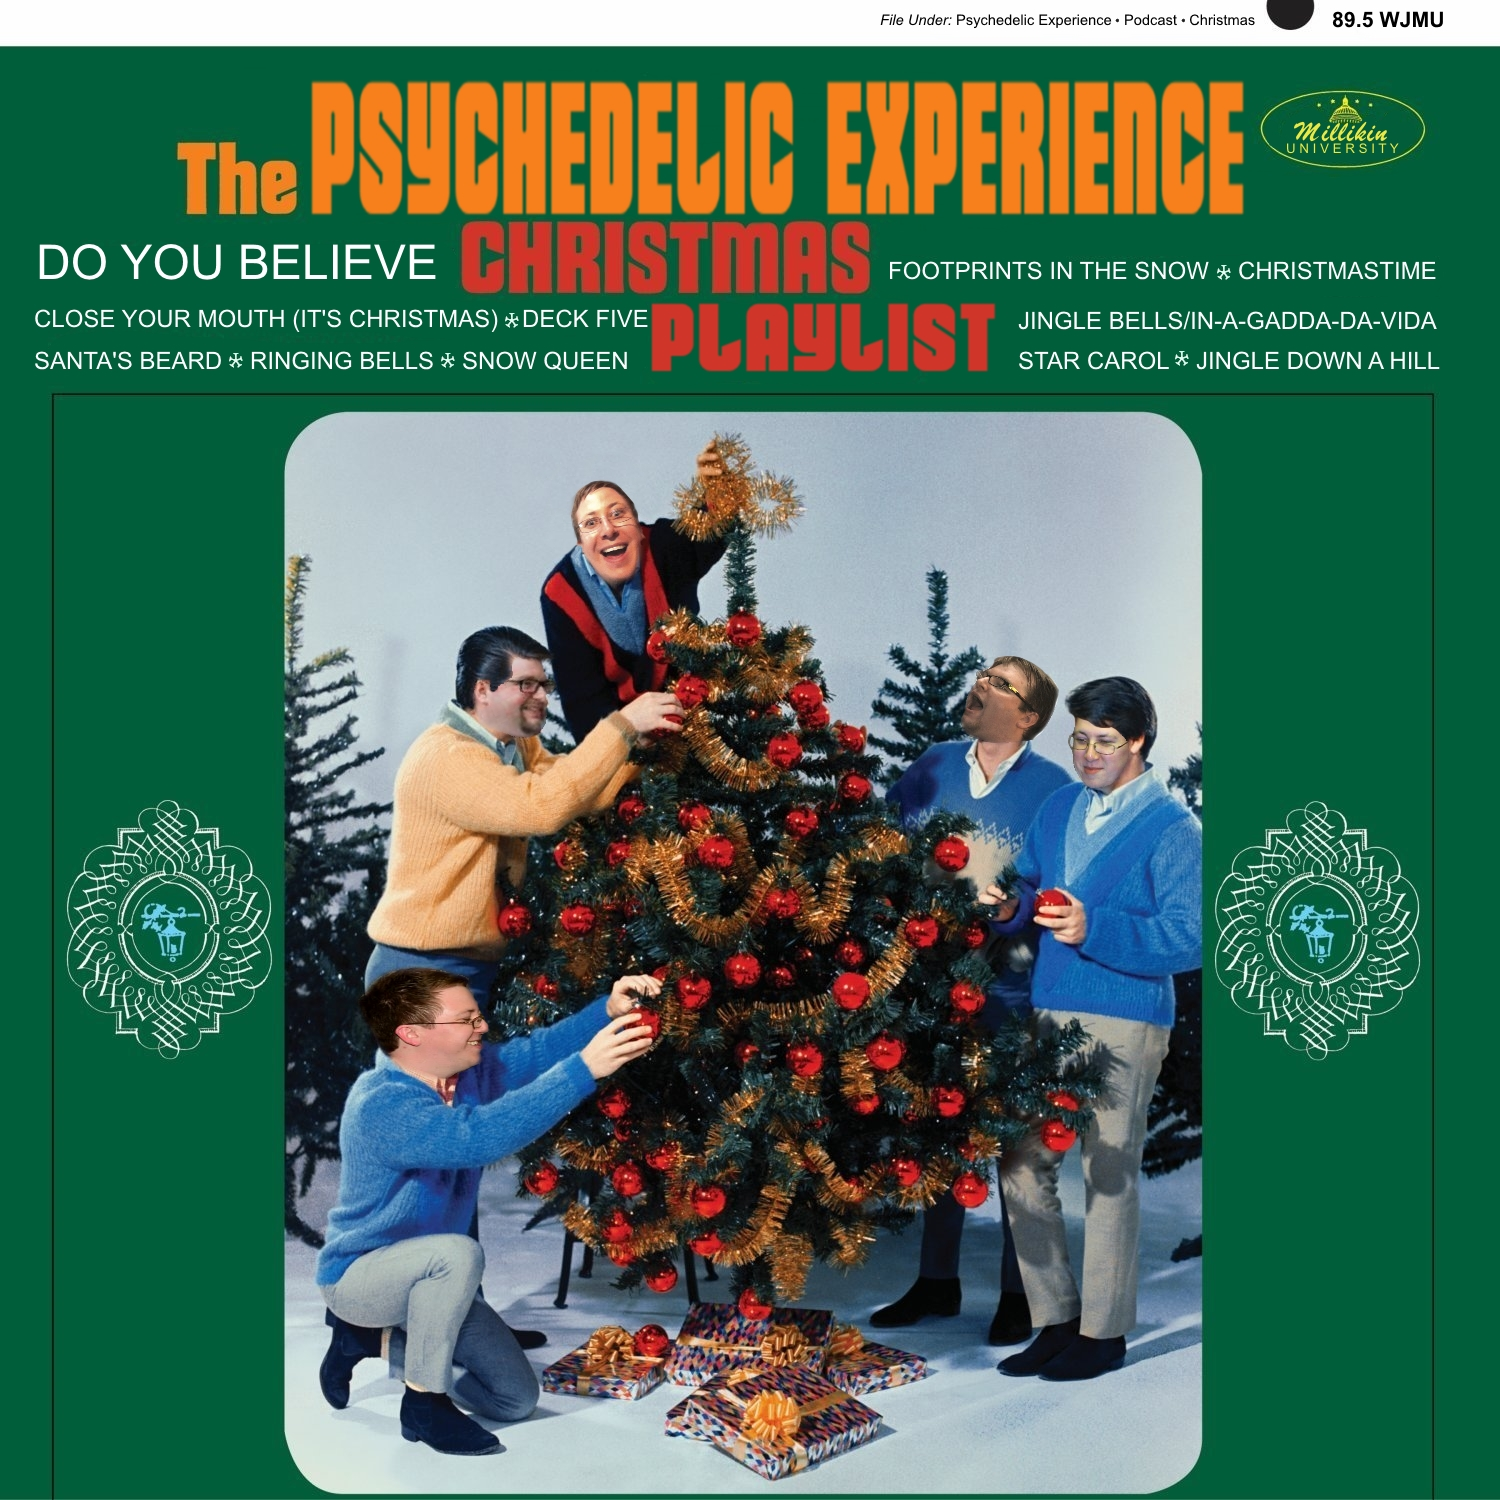 Psychedelic Christmas Songs | The Psychedelic Experience on 89.5 WJMU